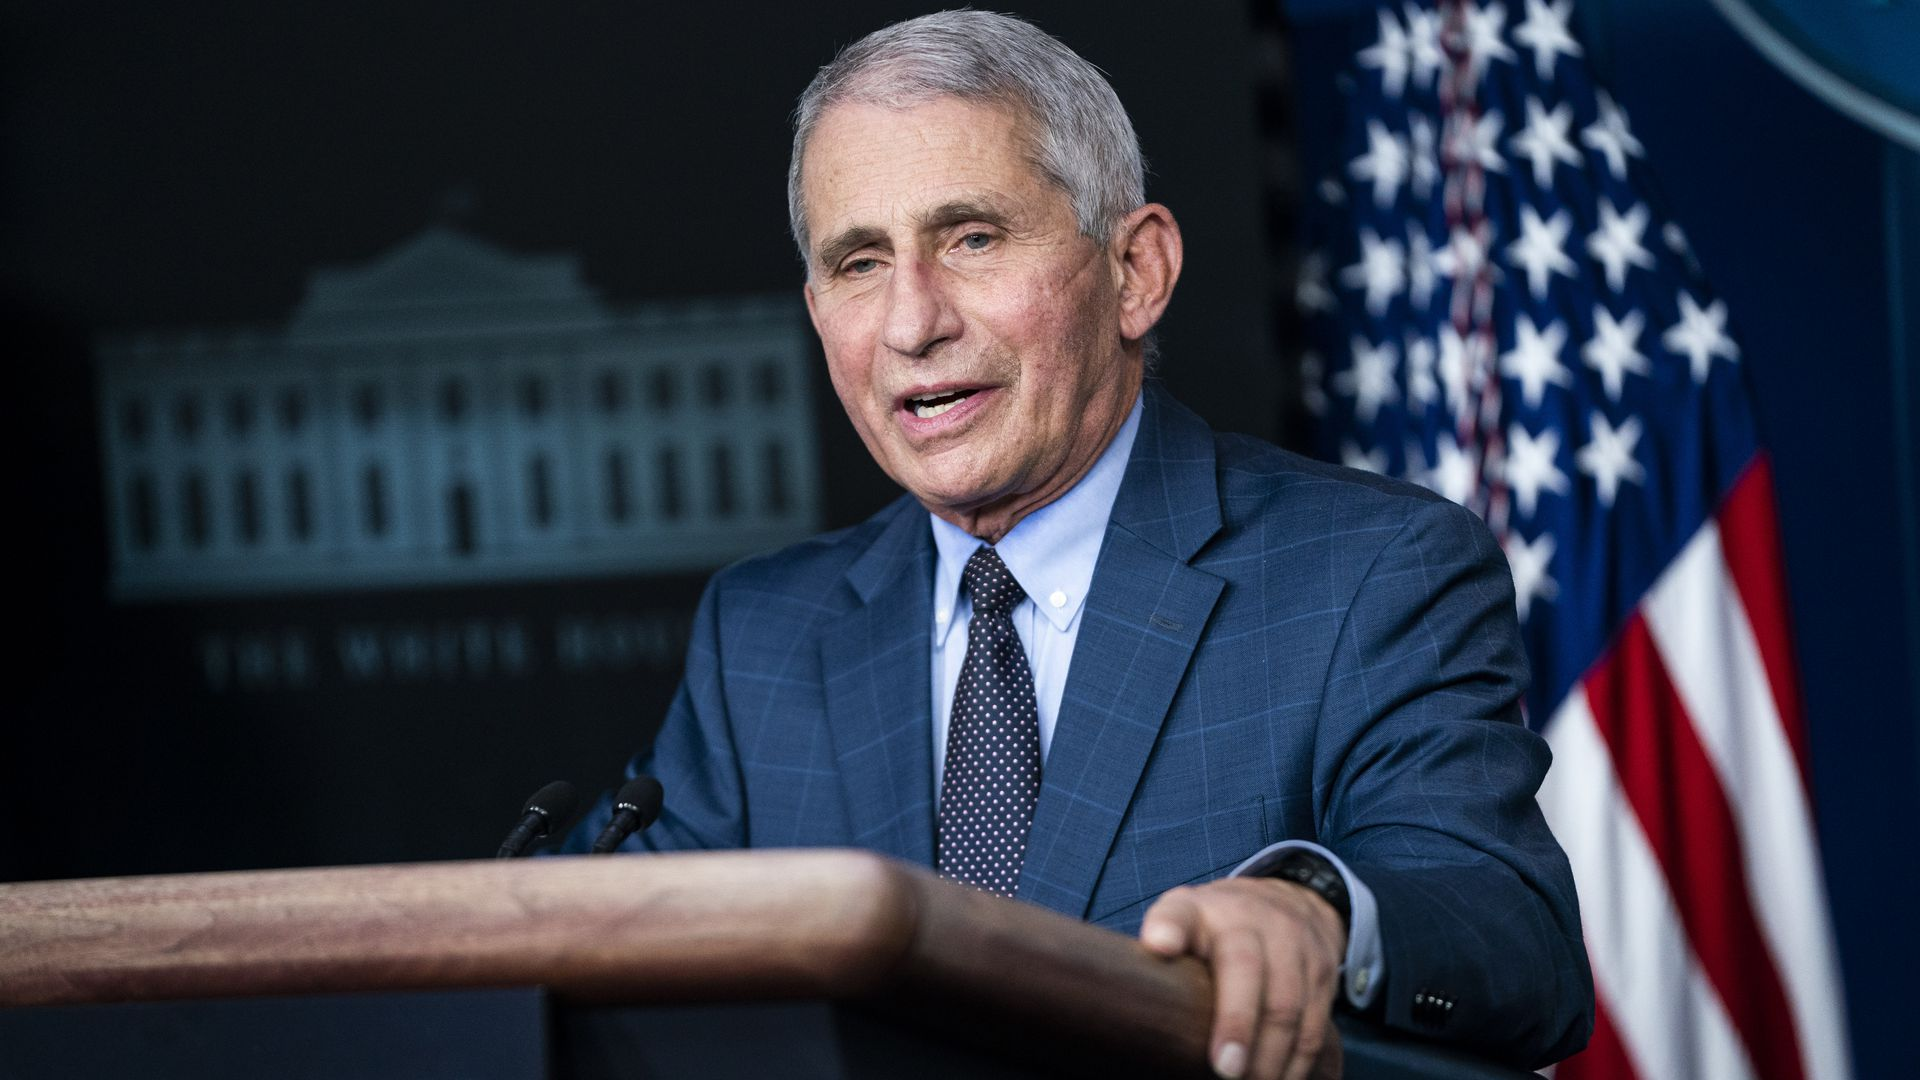 Anthony Fauci at the White House